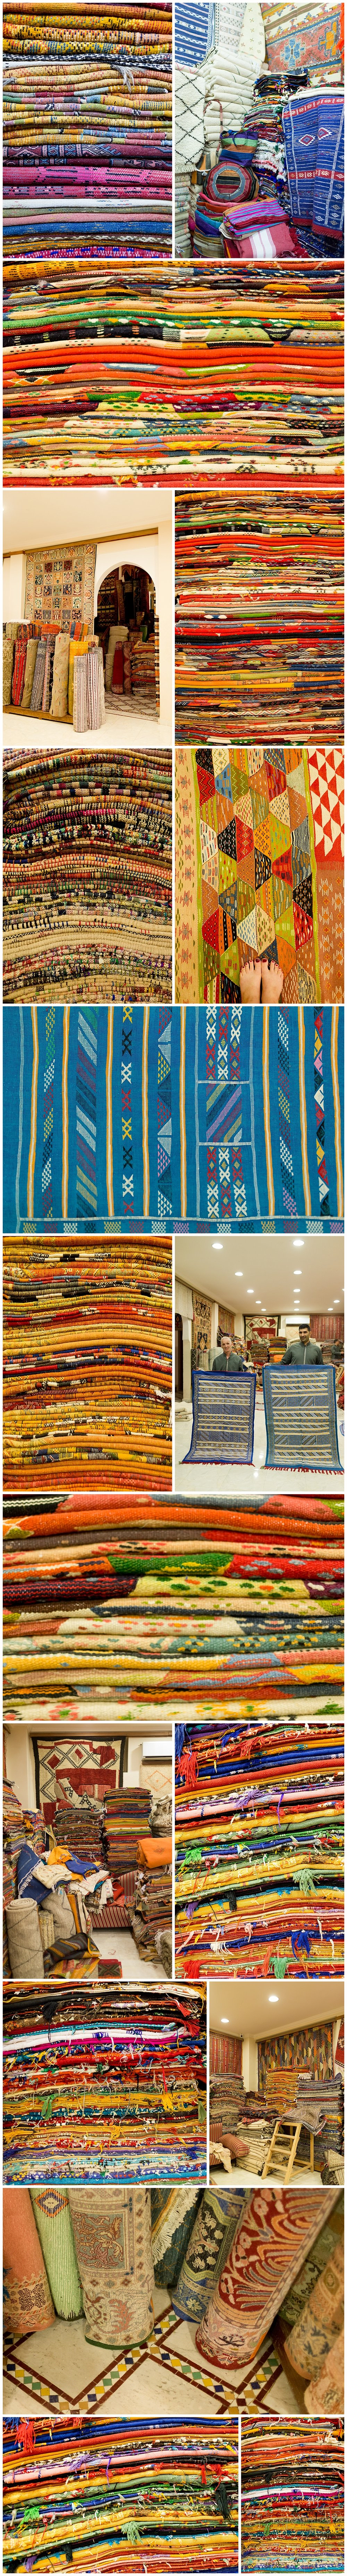 shopping for a rug in Marrakech, Morocco